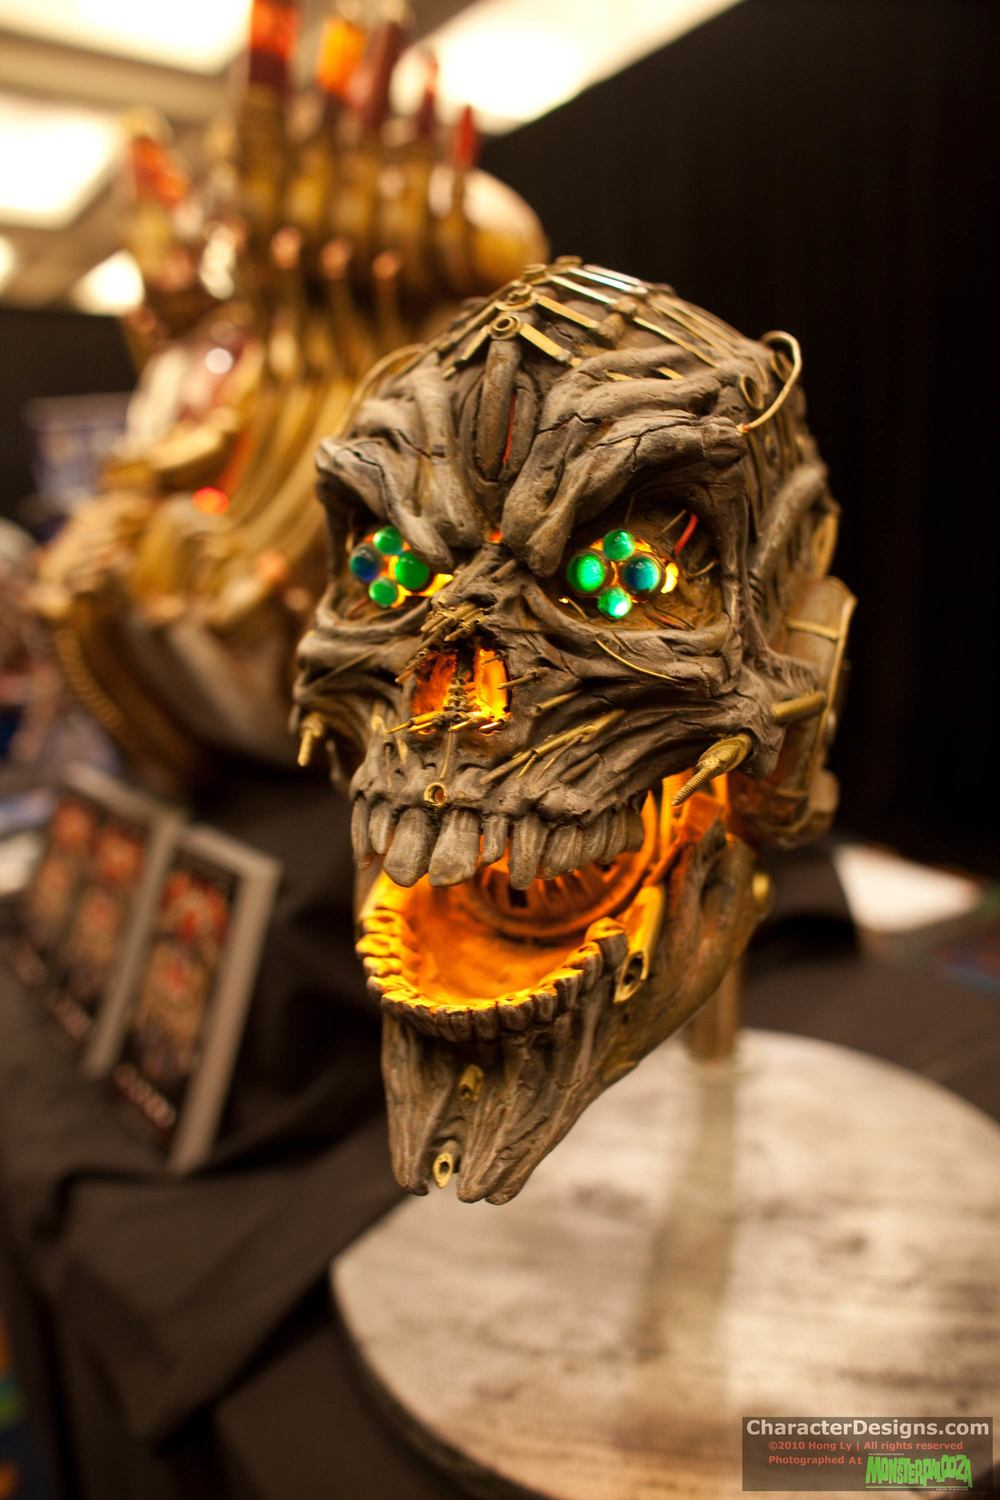 2010_Monsterpalooza_163.jpg